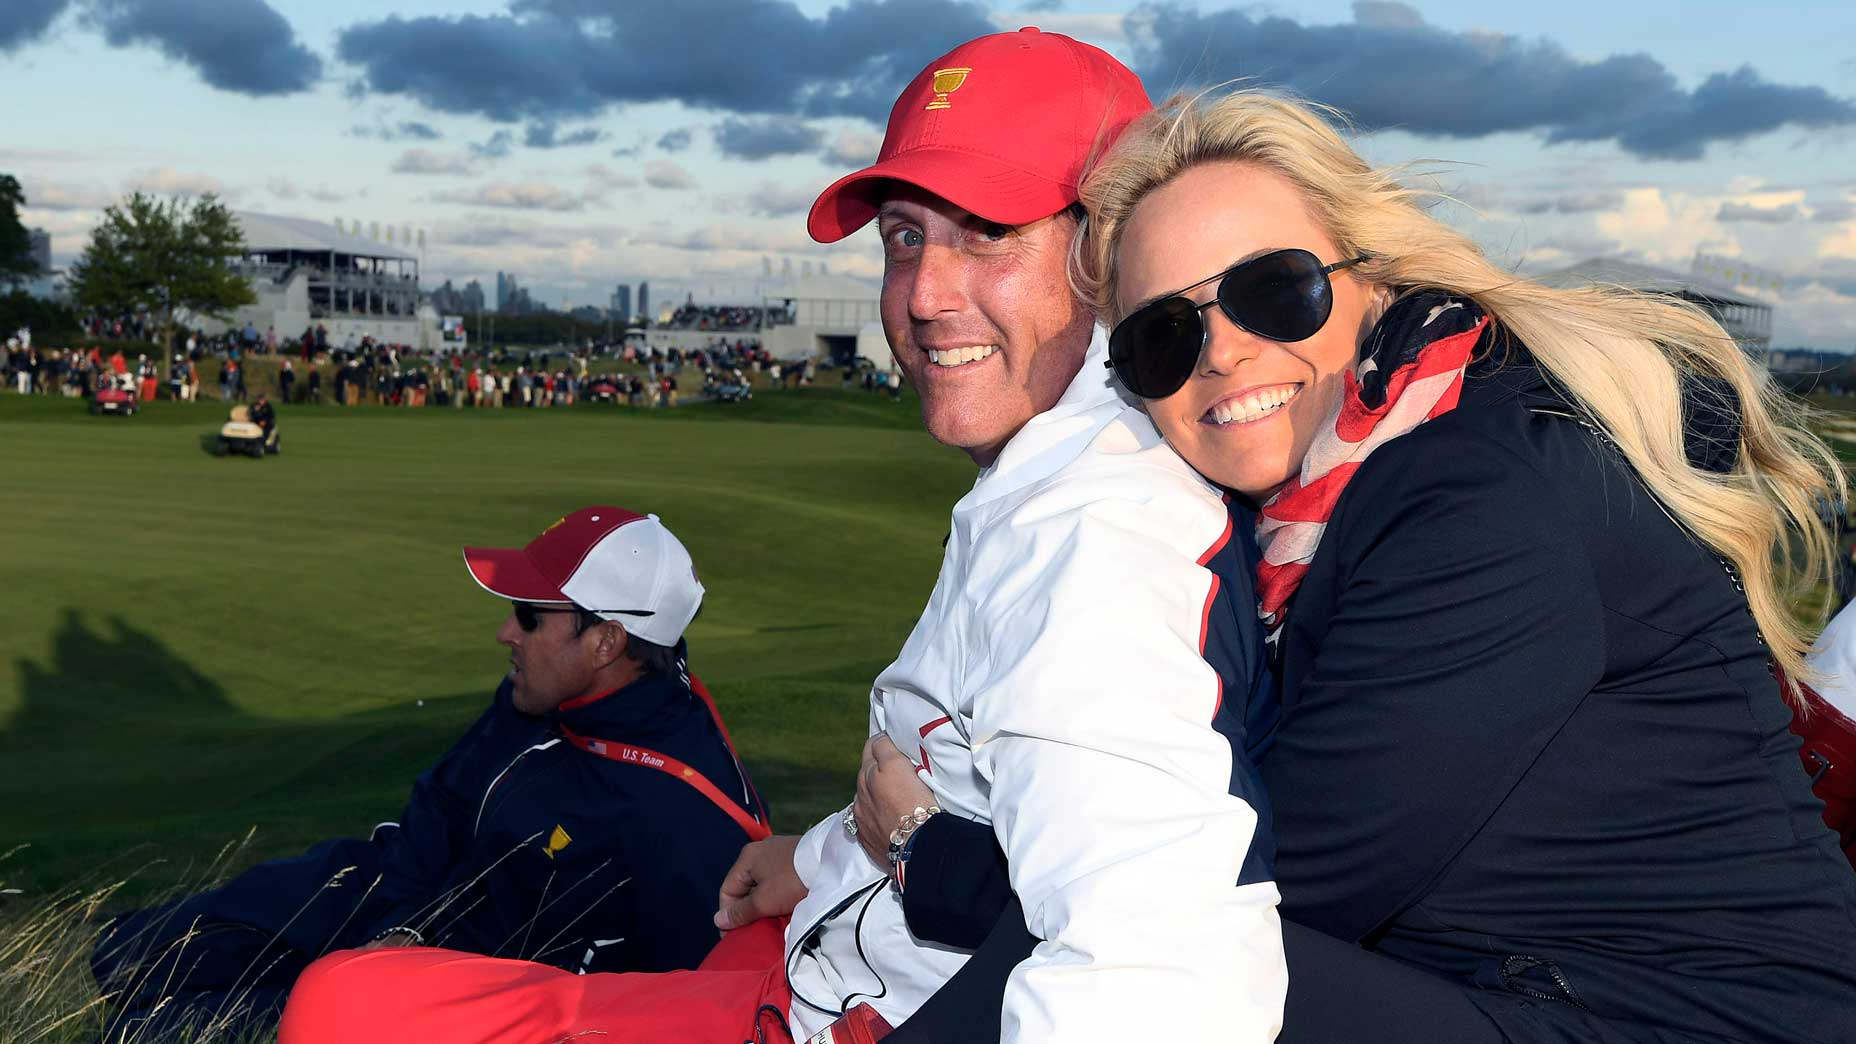 Amy and Phil Mickelson at the 2017 Presidents Cup.